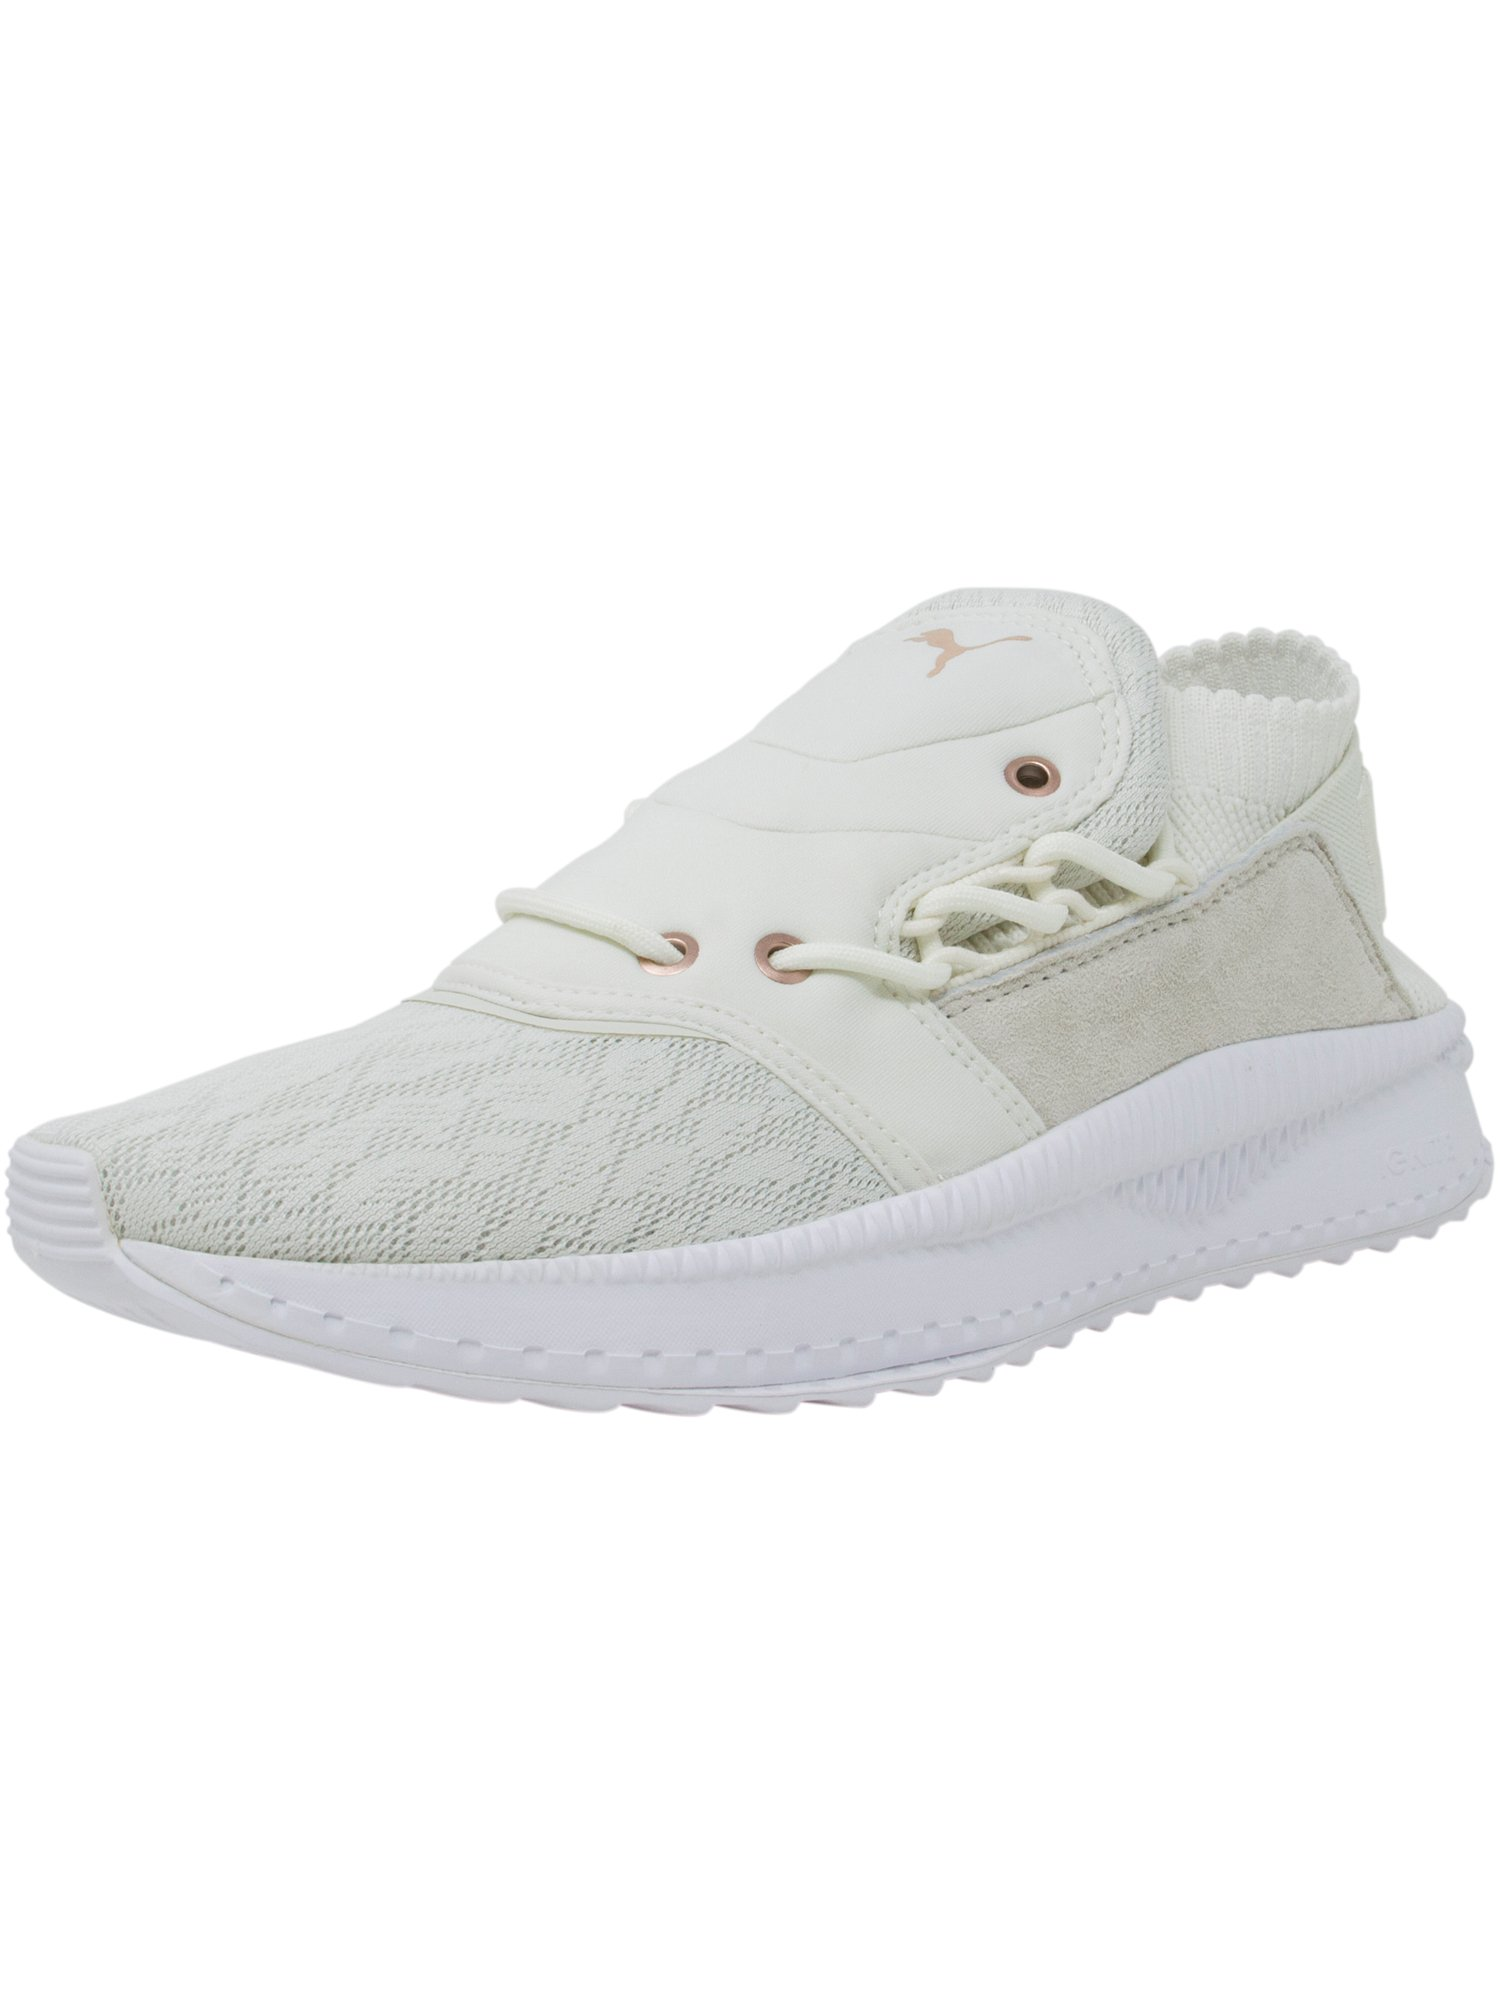 Puma Women's Tsugi Shinsei Marshmallow / Ankle-High Fabric Training Shoes - 10M